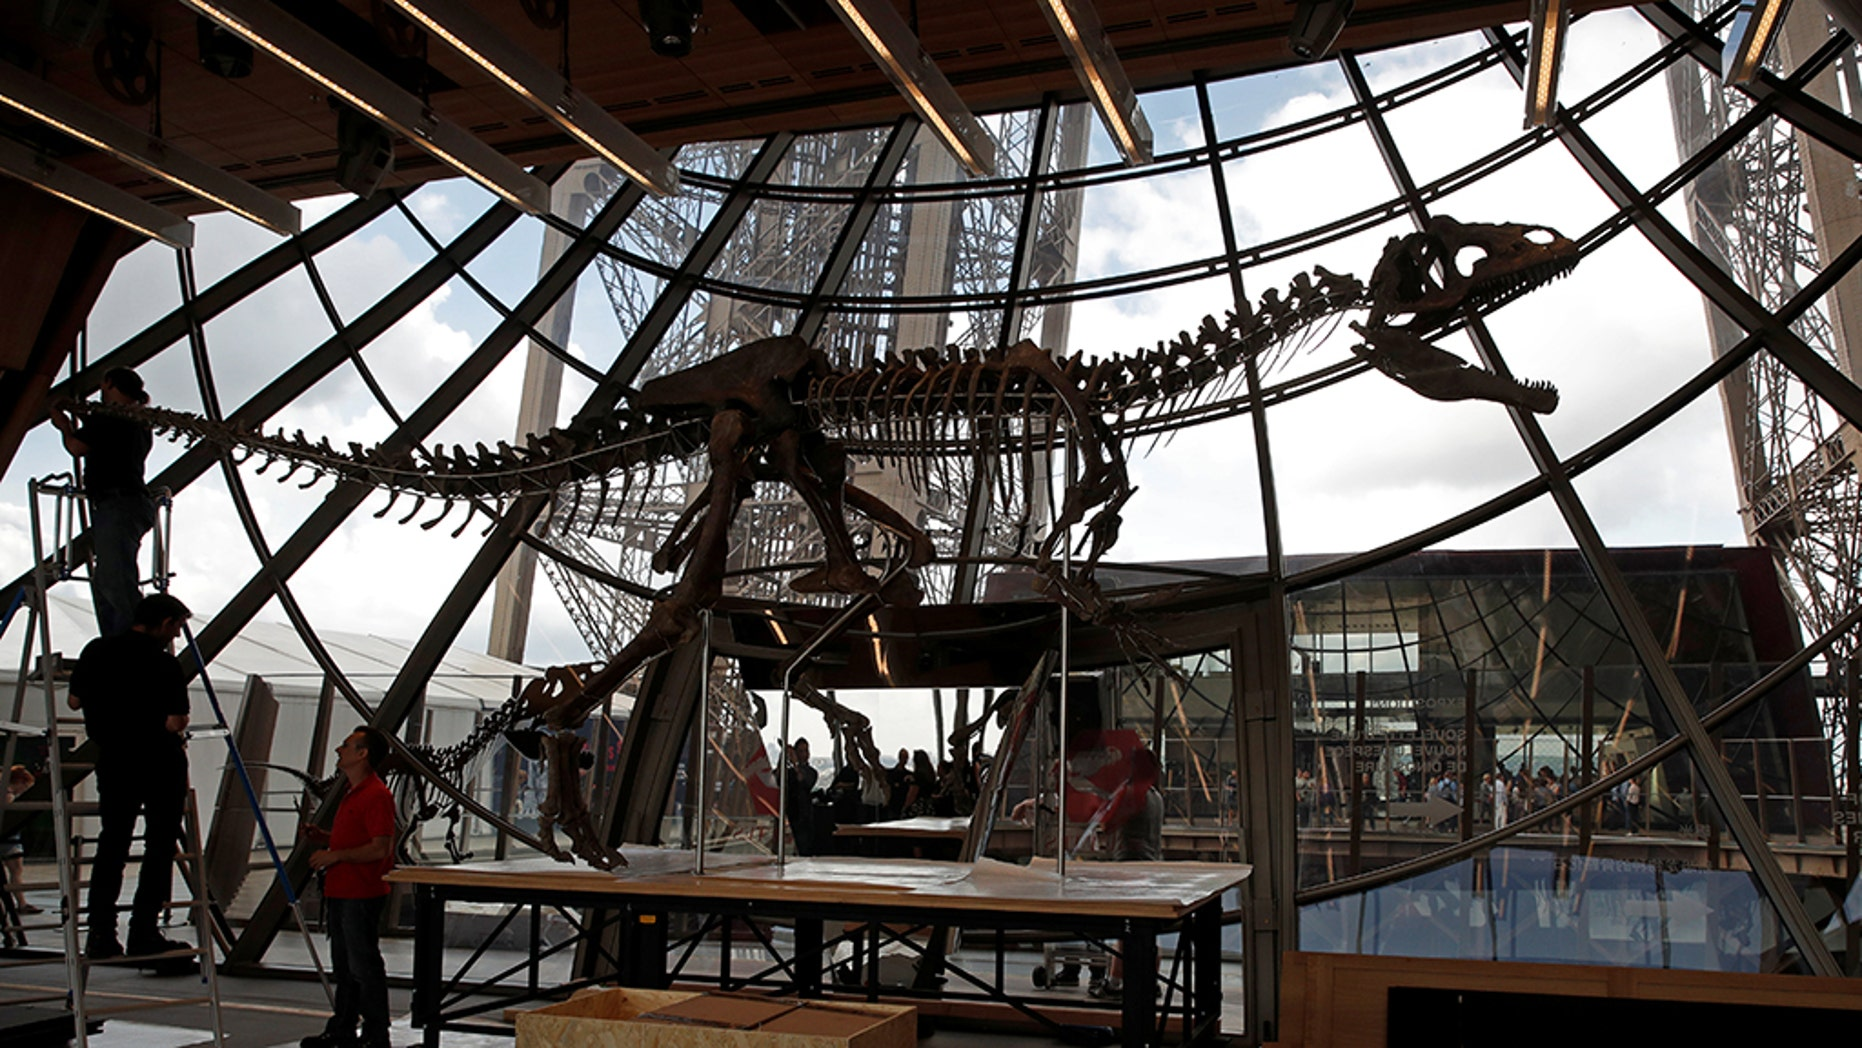 Workers reconstruct dinosaur fossil at the Eiffel tower, in Paris, France, June 2, 2018 ahead of its auction on Monday. (REUTERS/Philippe Wojazer)